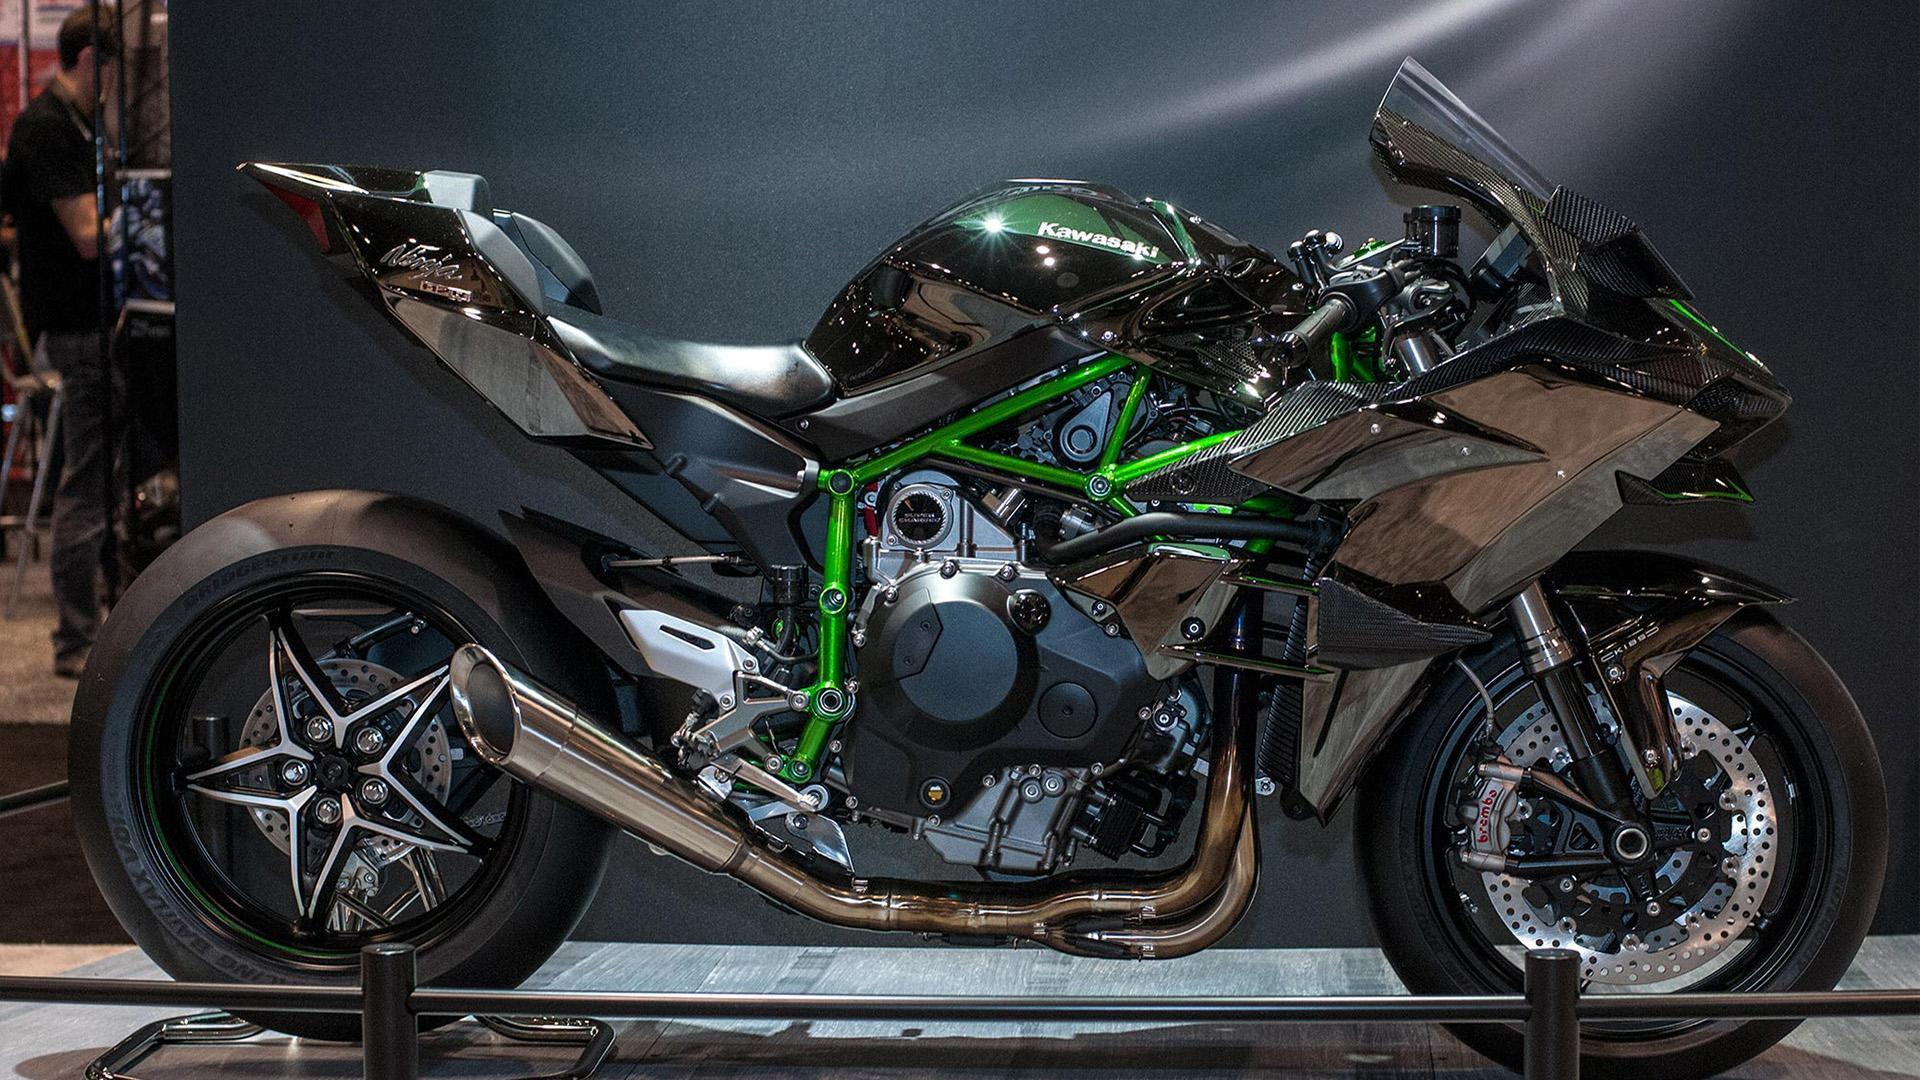 HD wallpaper Kawasaki Ninja H Carbon Limited Edition